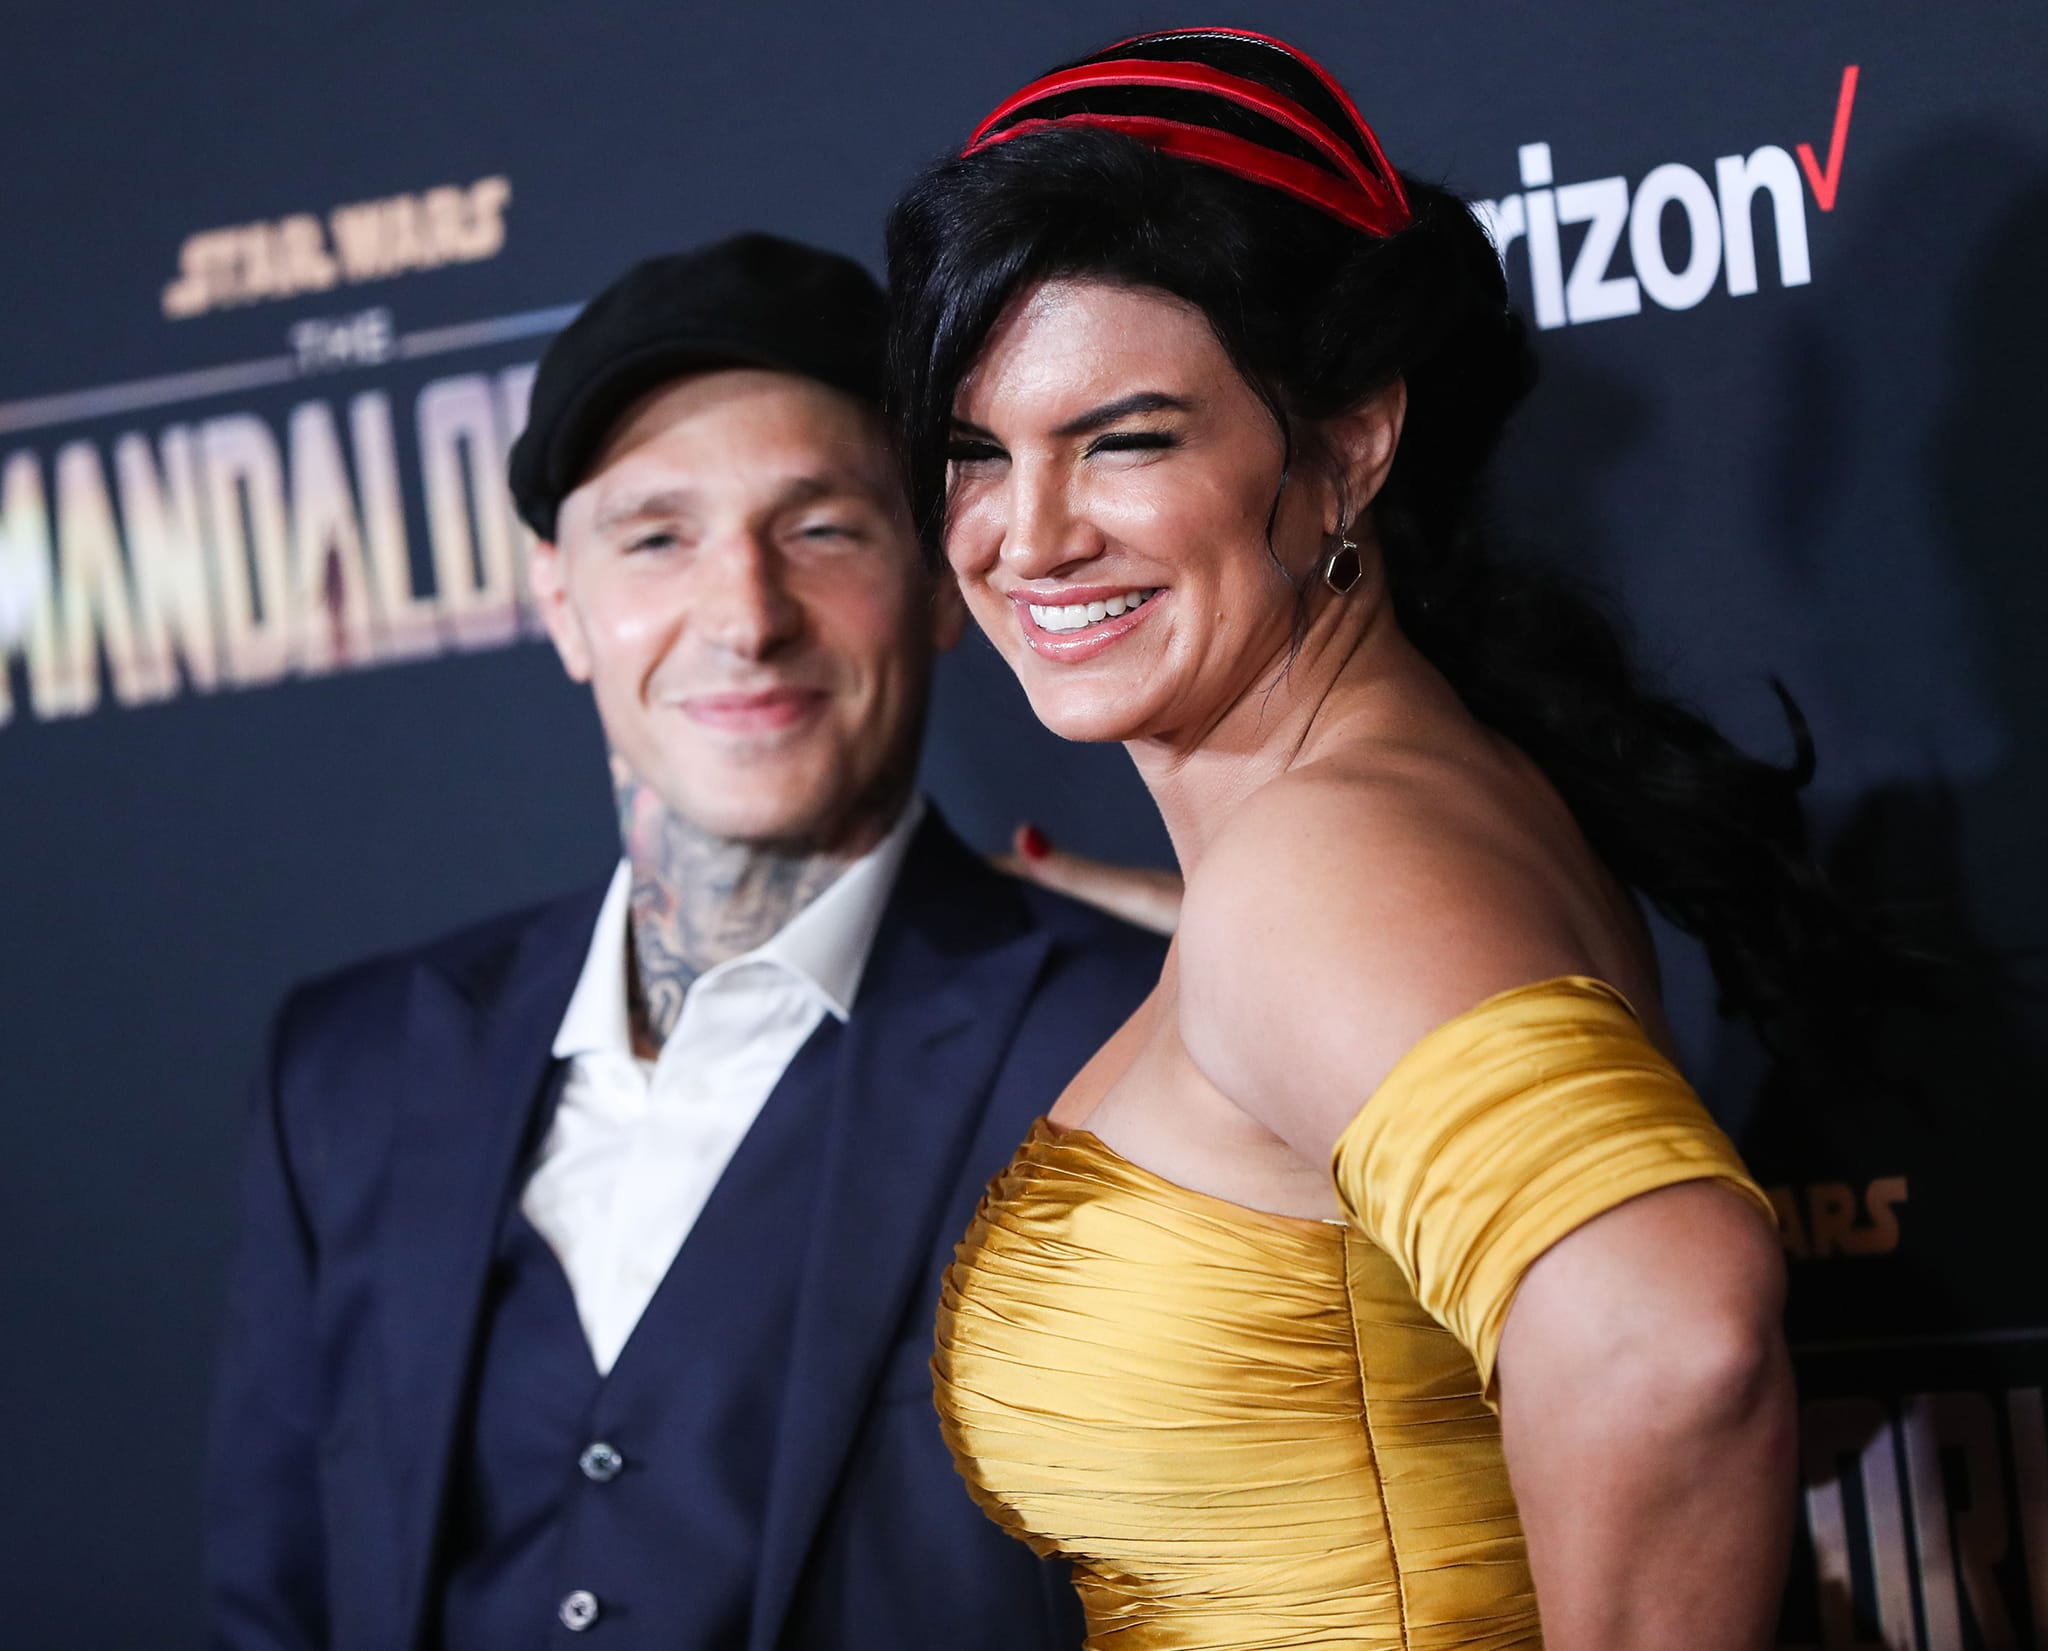 Gina Carano and Kevin Ross are still going strong after getting back together in 2014